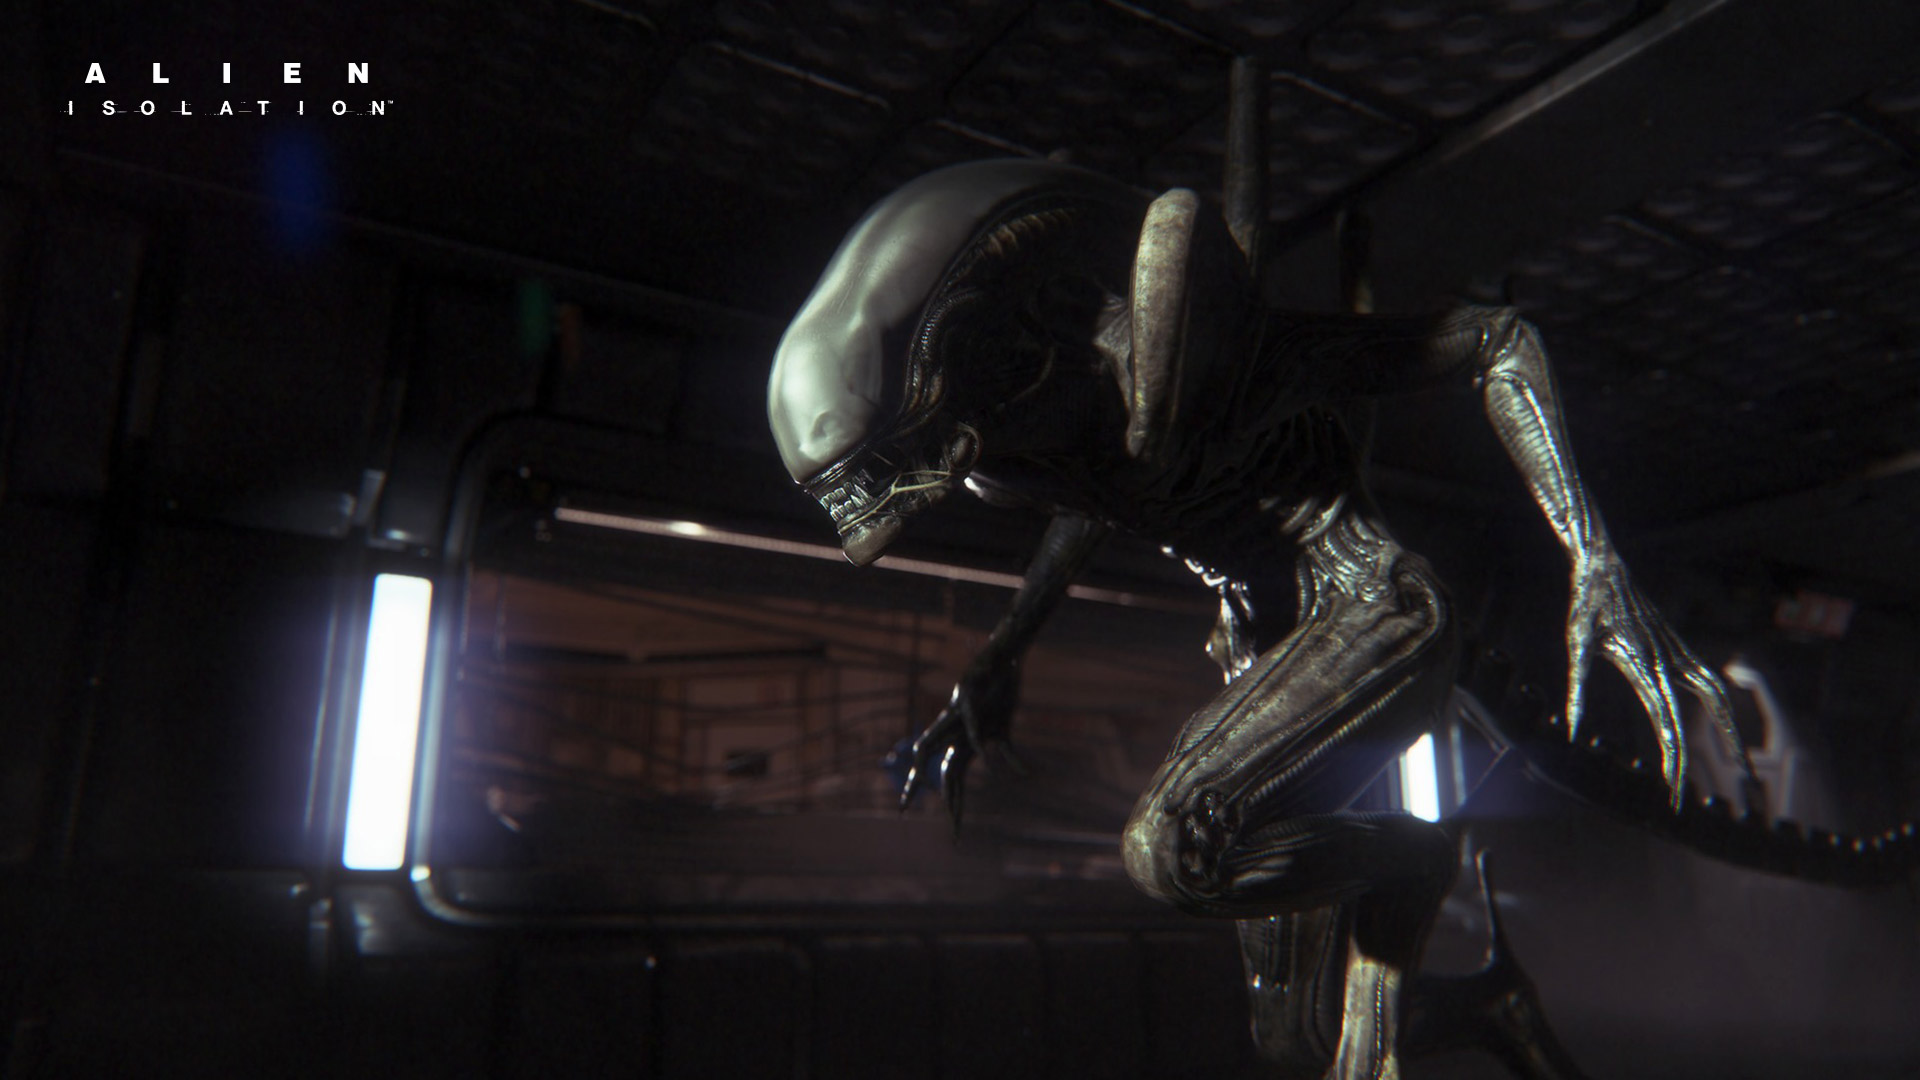 Game HD Wallpaper 1024x576 Alien Isolation Video Game HD Wallpaper 1920x1080